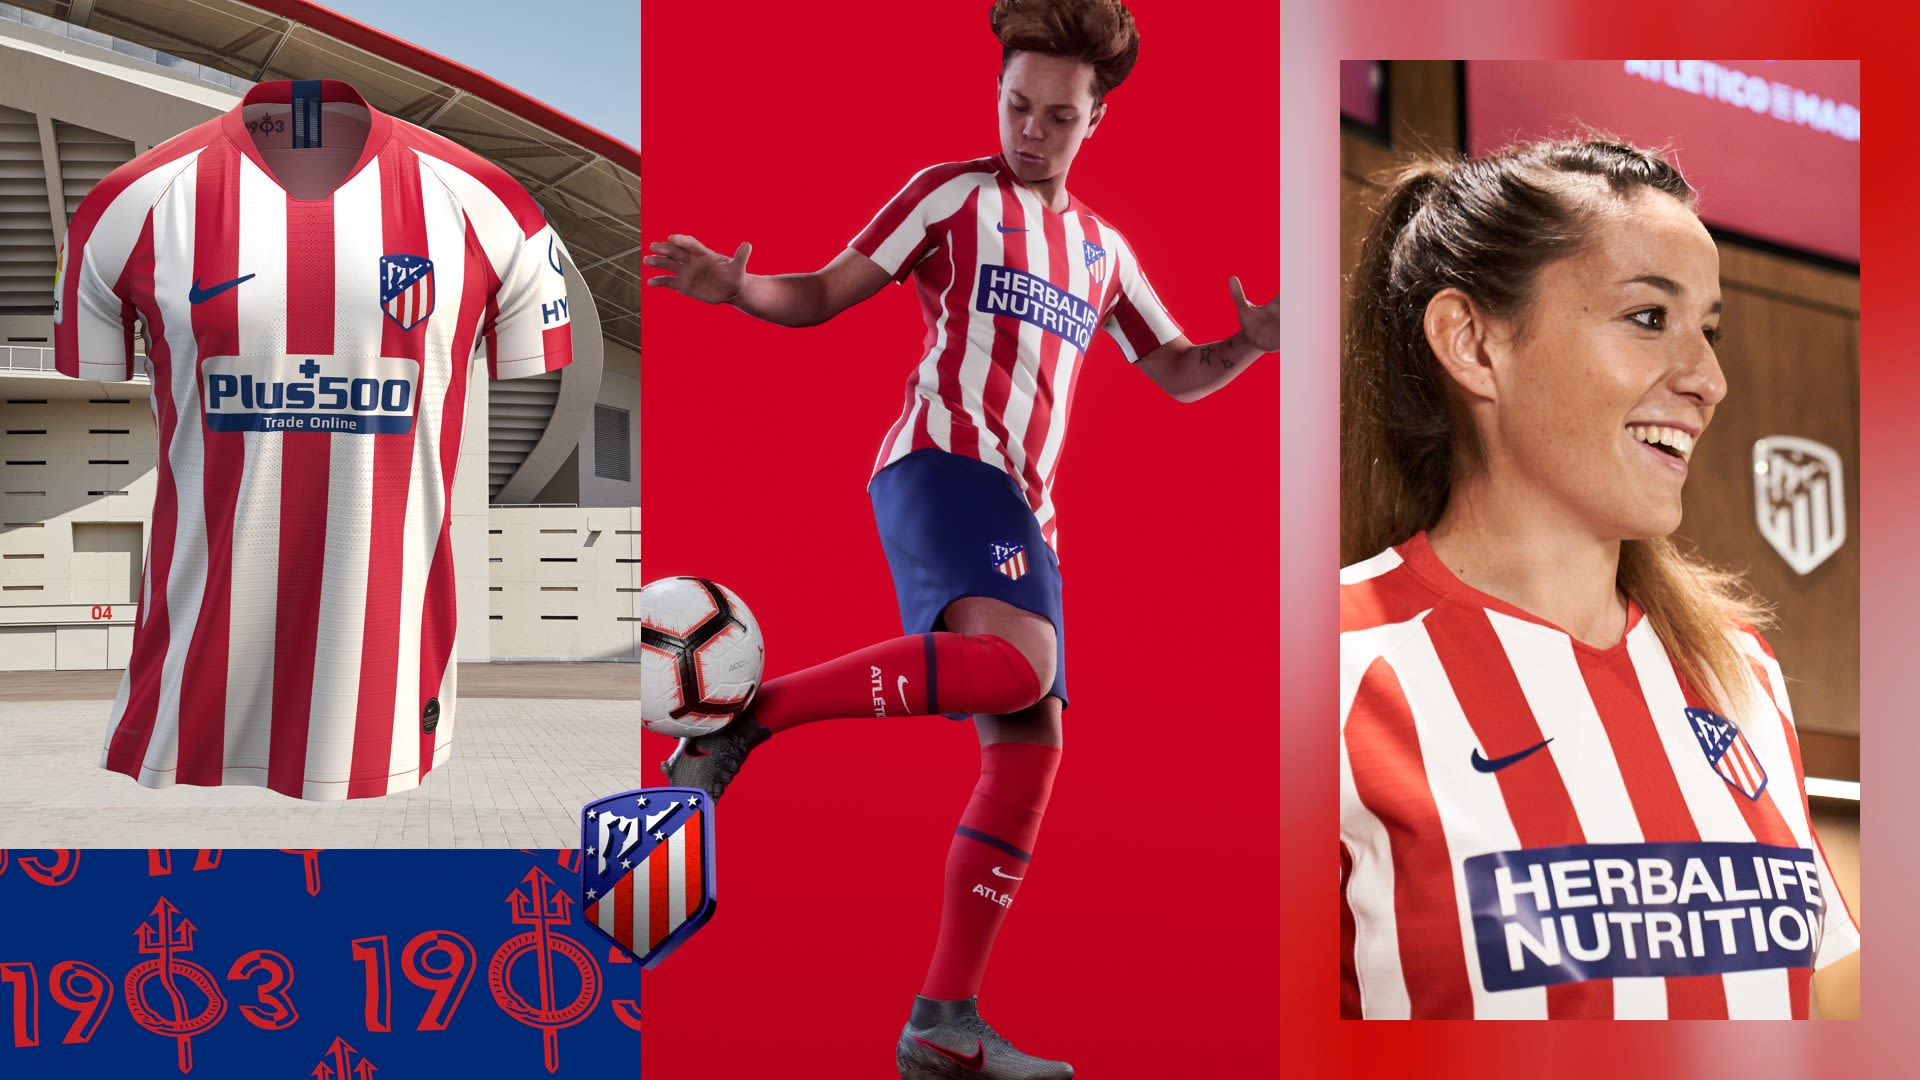 53ebb2cdc Nike Football. 2019/20 Atletico De Madrid Stadium Home Jersey